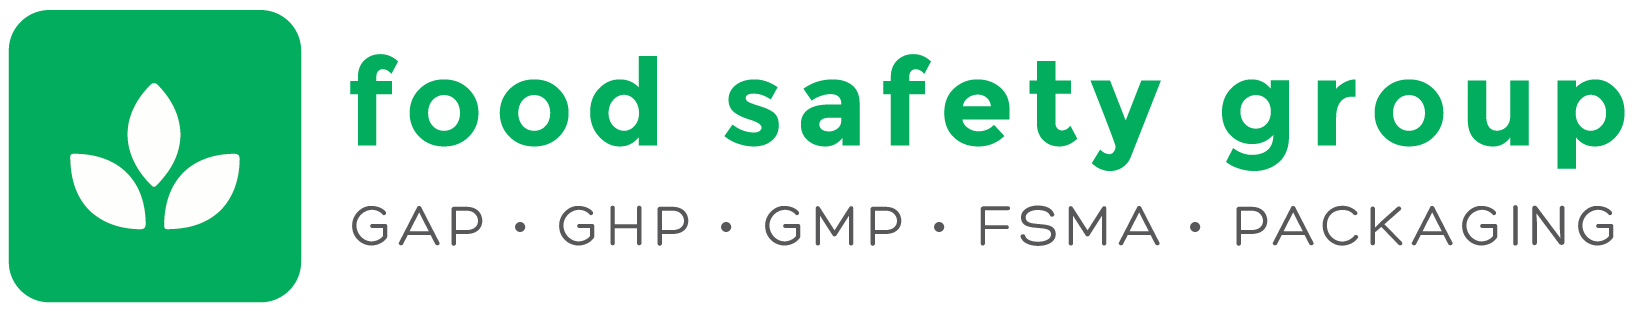 Food Safety Group | GAP • GHP • GMP • FSMA • Packaging